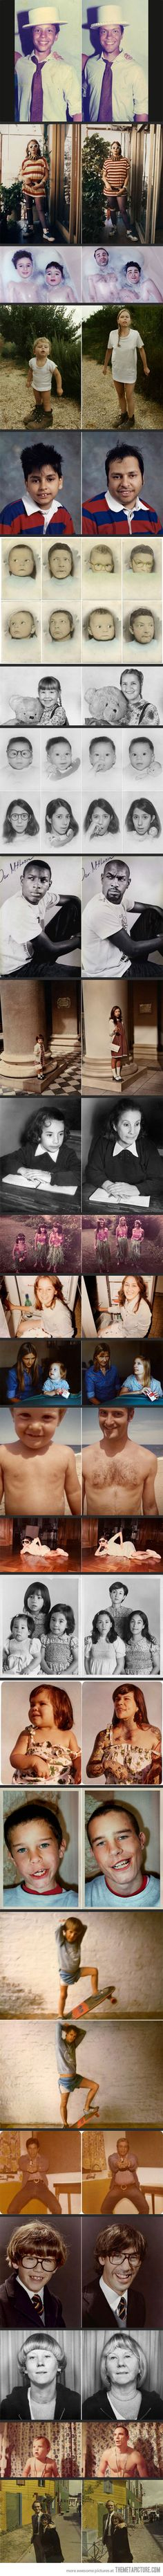 Then and Now Photos. Too cool!